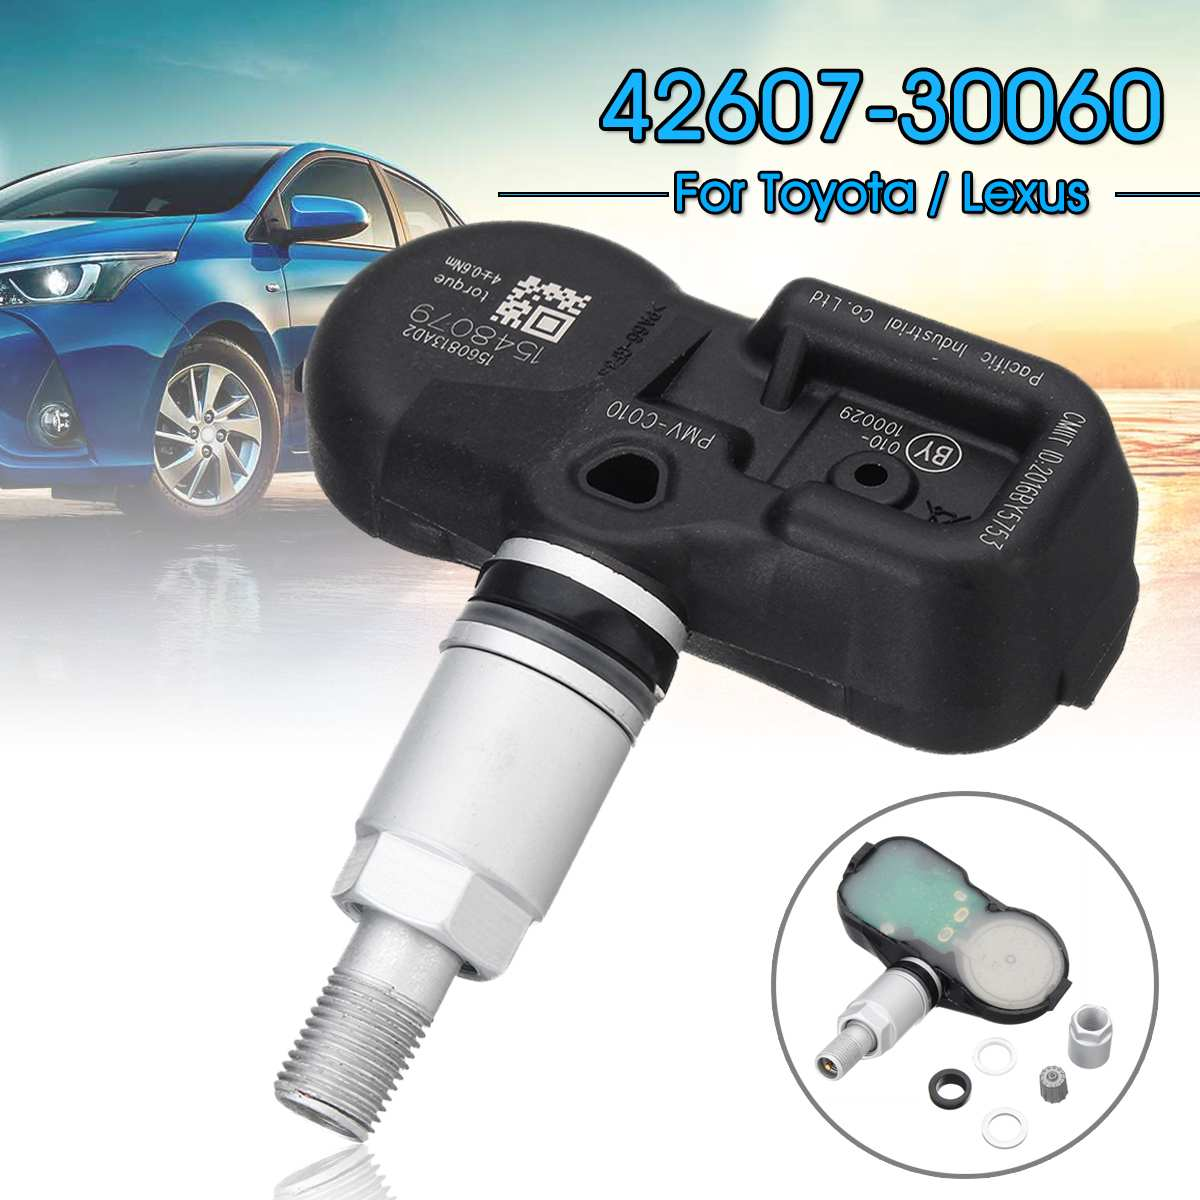 Tire Pressure Sensor TPMS For Toyota Camry For Lexus GS350 42607-30060 42607-06020